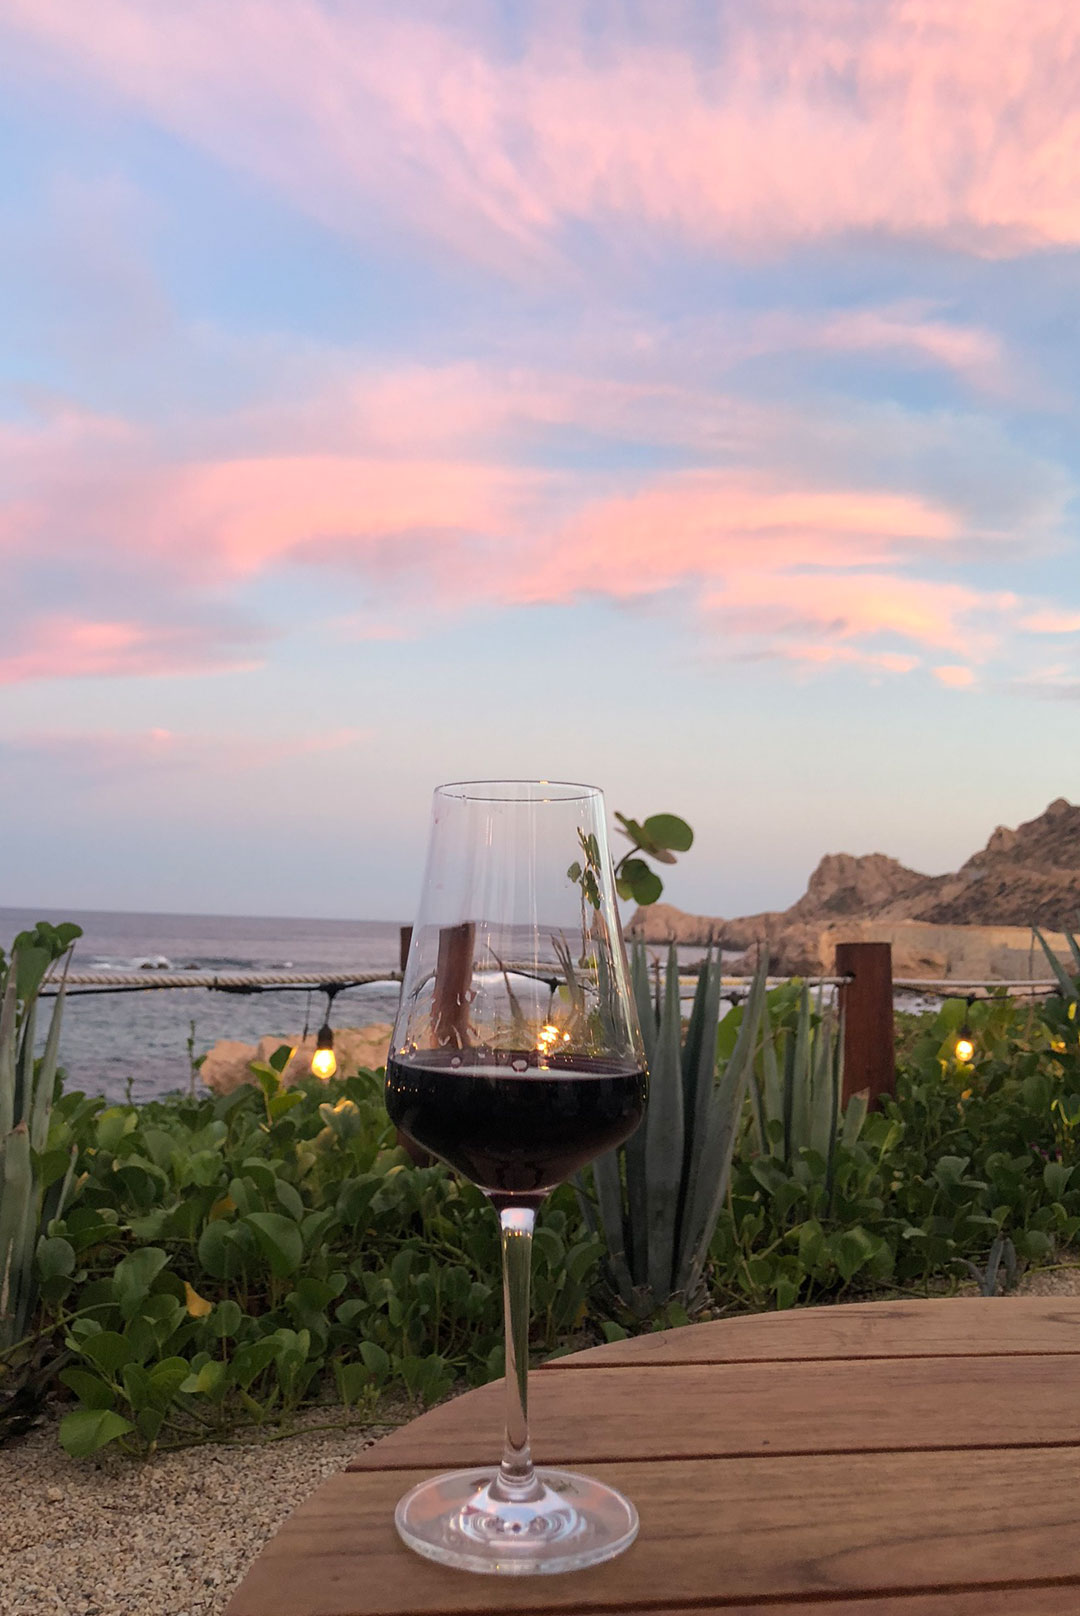 wine glass by sunset in mexico